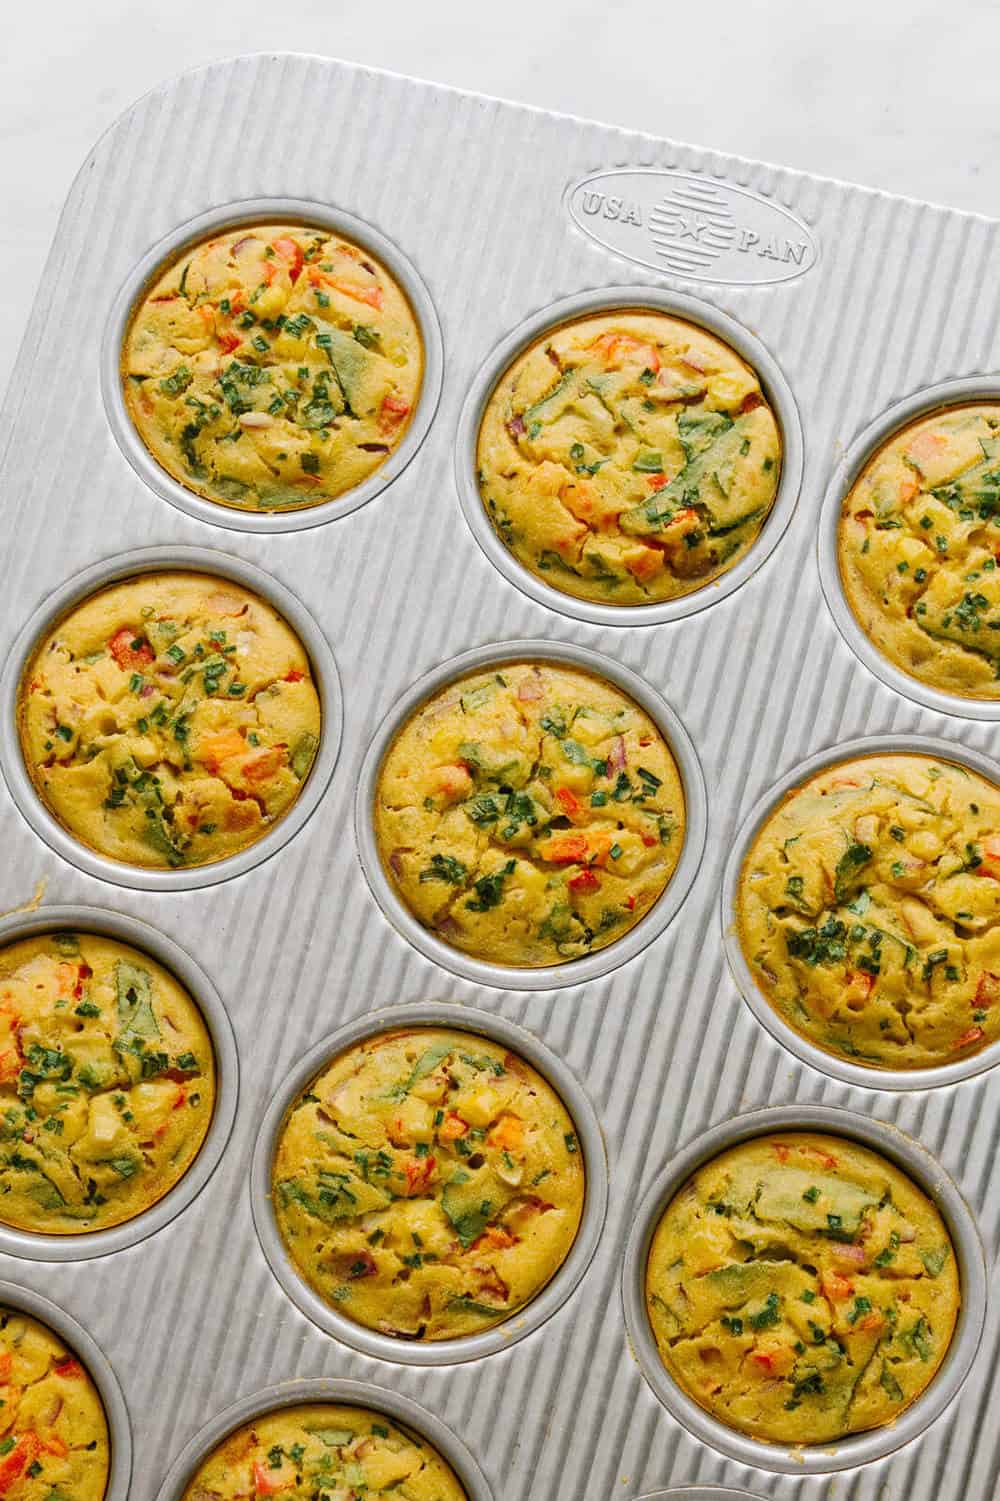 vegan chickpea flour frittatas just pulled from the oven